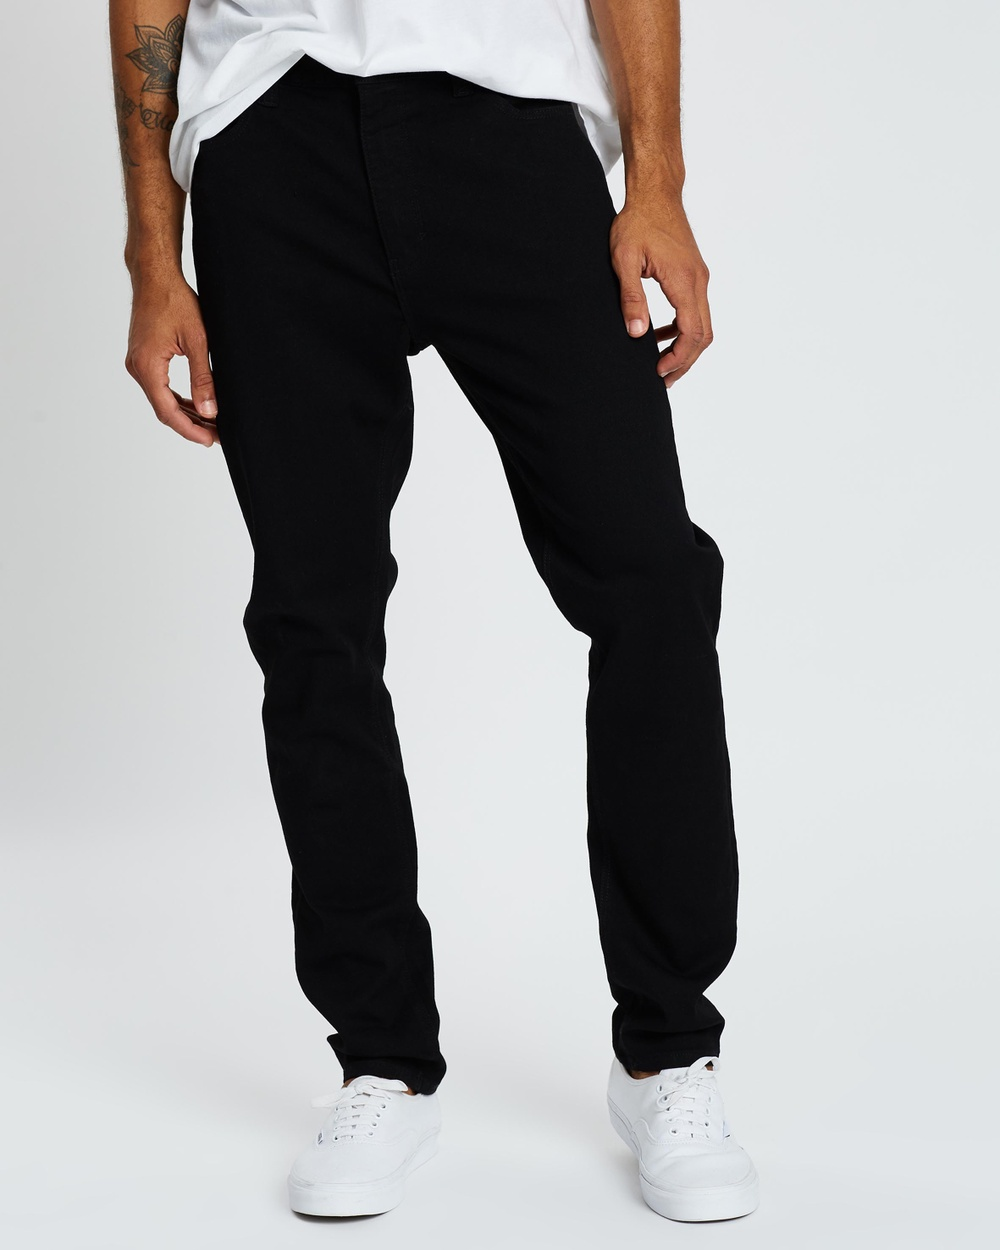 Abrand A Dropped Slim Turn Up Jeans Black Mirror 1324